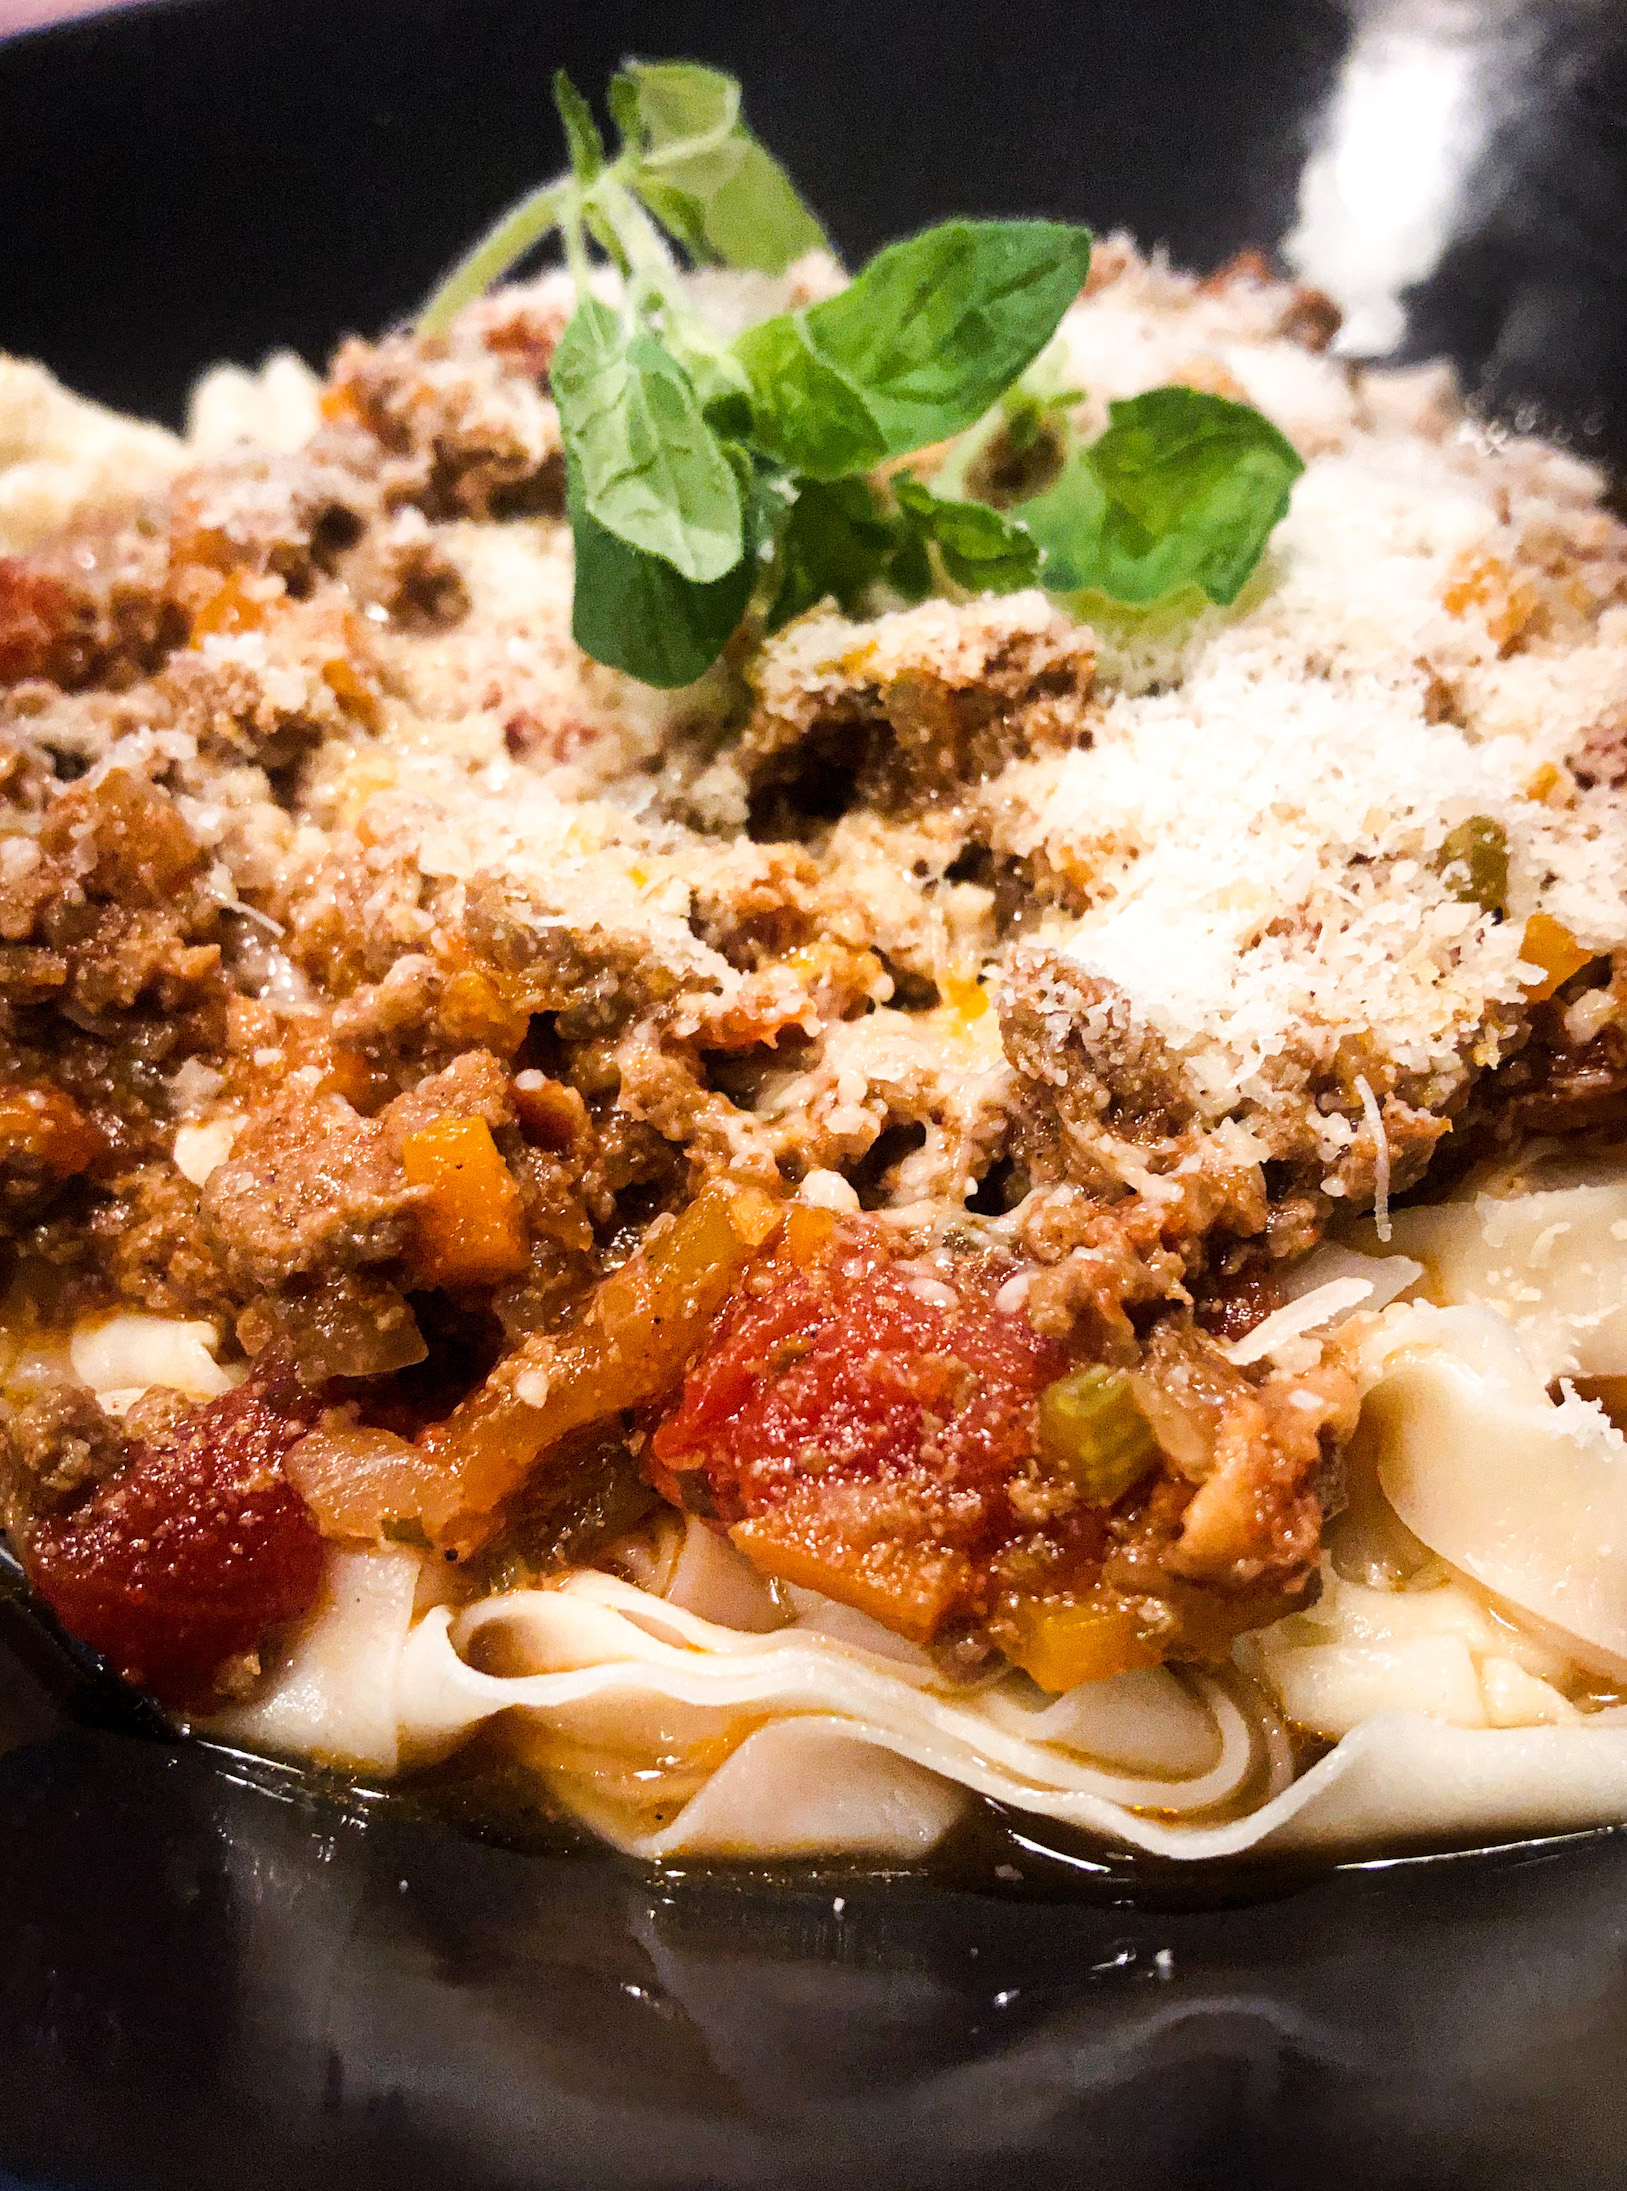 Homemade pasta with simmer-bolognese